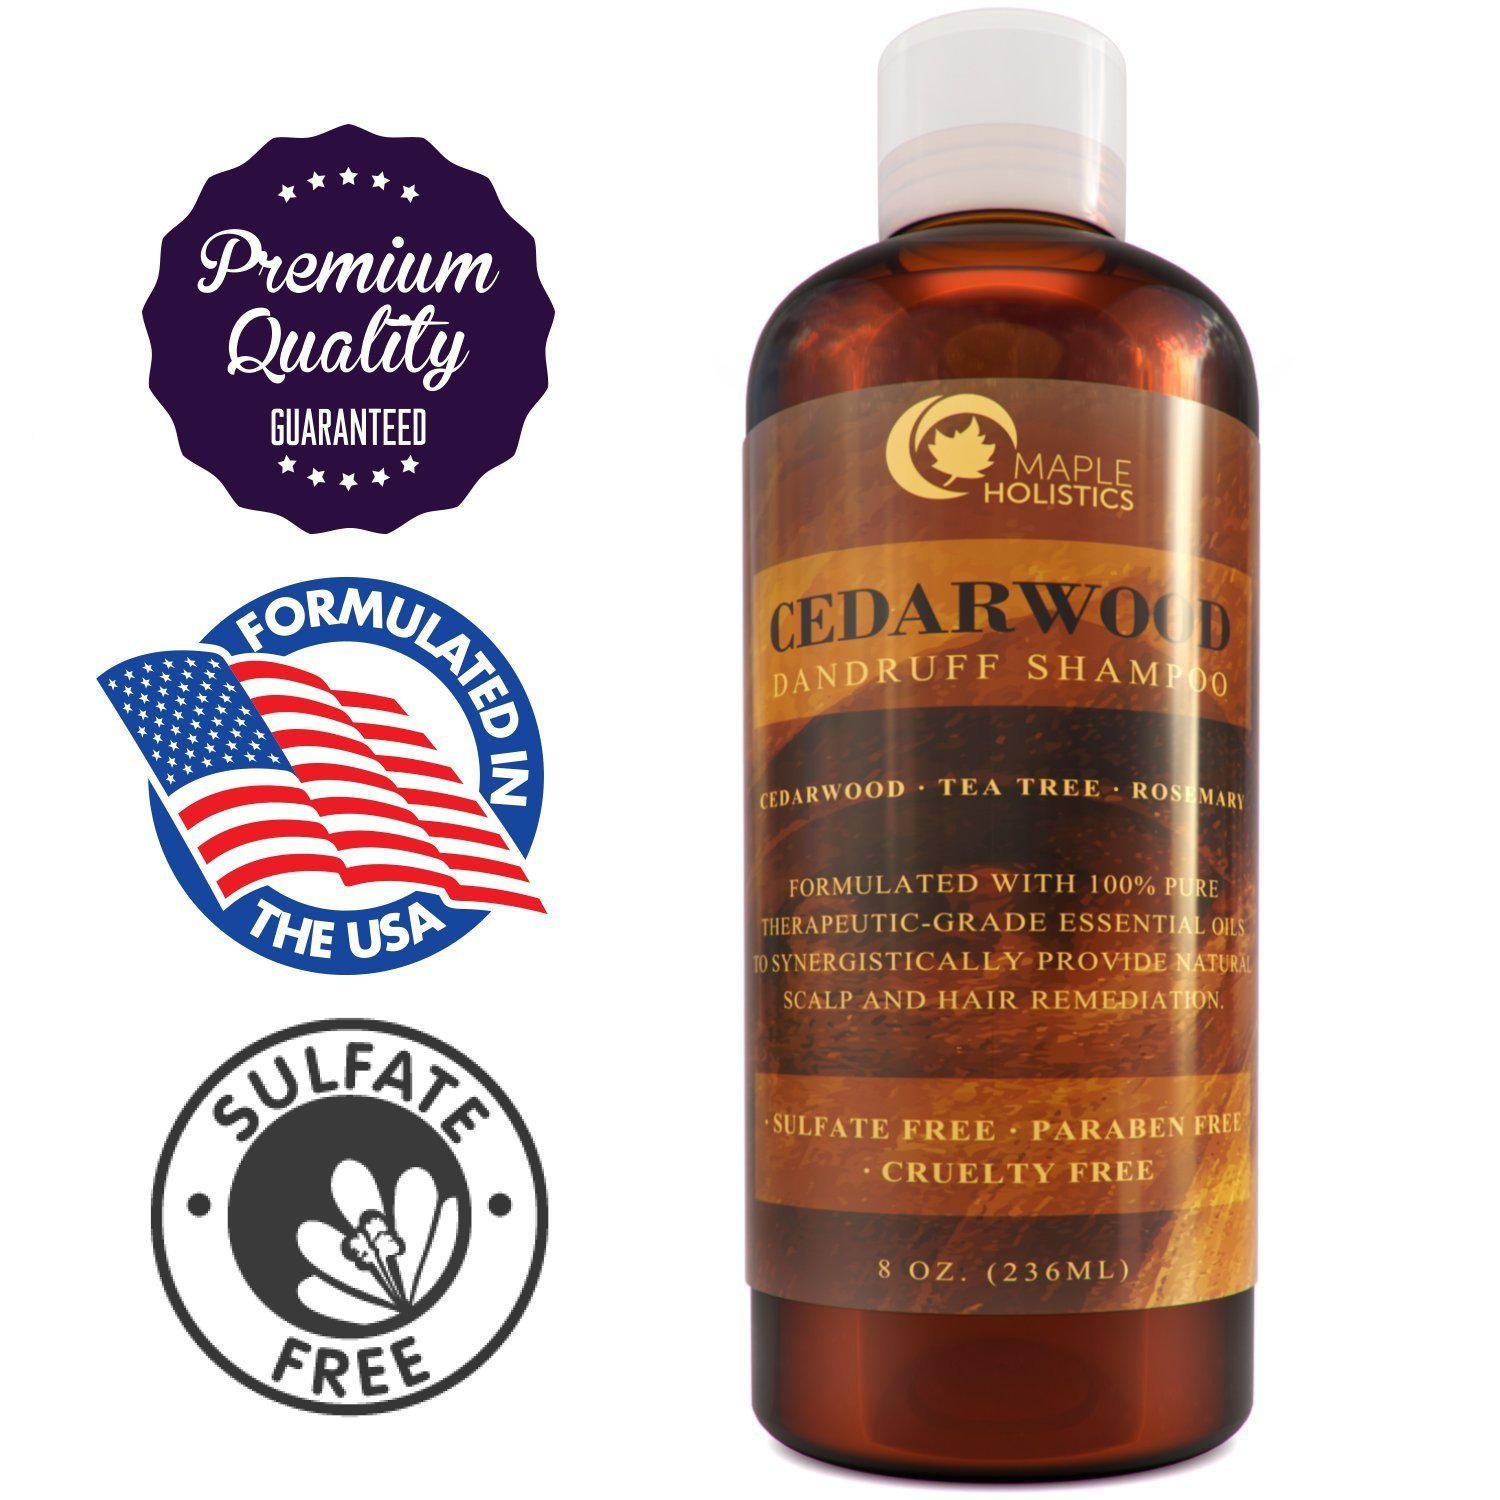 Buy Anti Dandruff Thickening Shampoo With Cedarwood Essential Oil Stop Hair Loss Promote Hair Growth Treat Psoriasis Flakes Scales Make Hair Soft Increase Volume Healthy Scalp Treatment